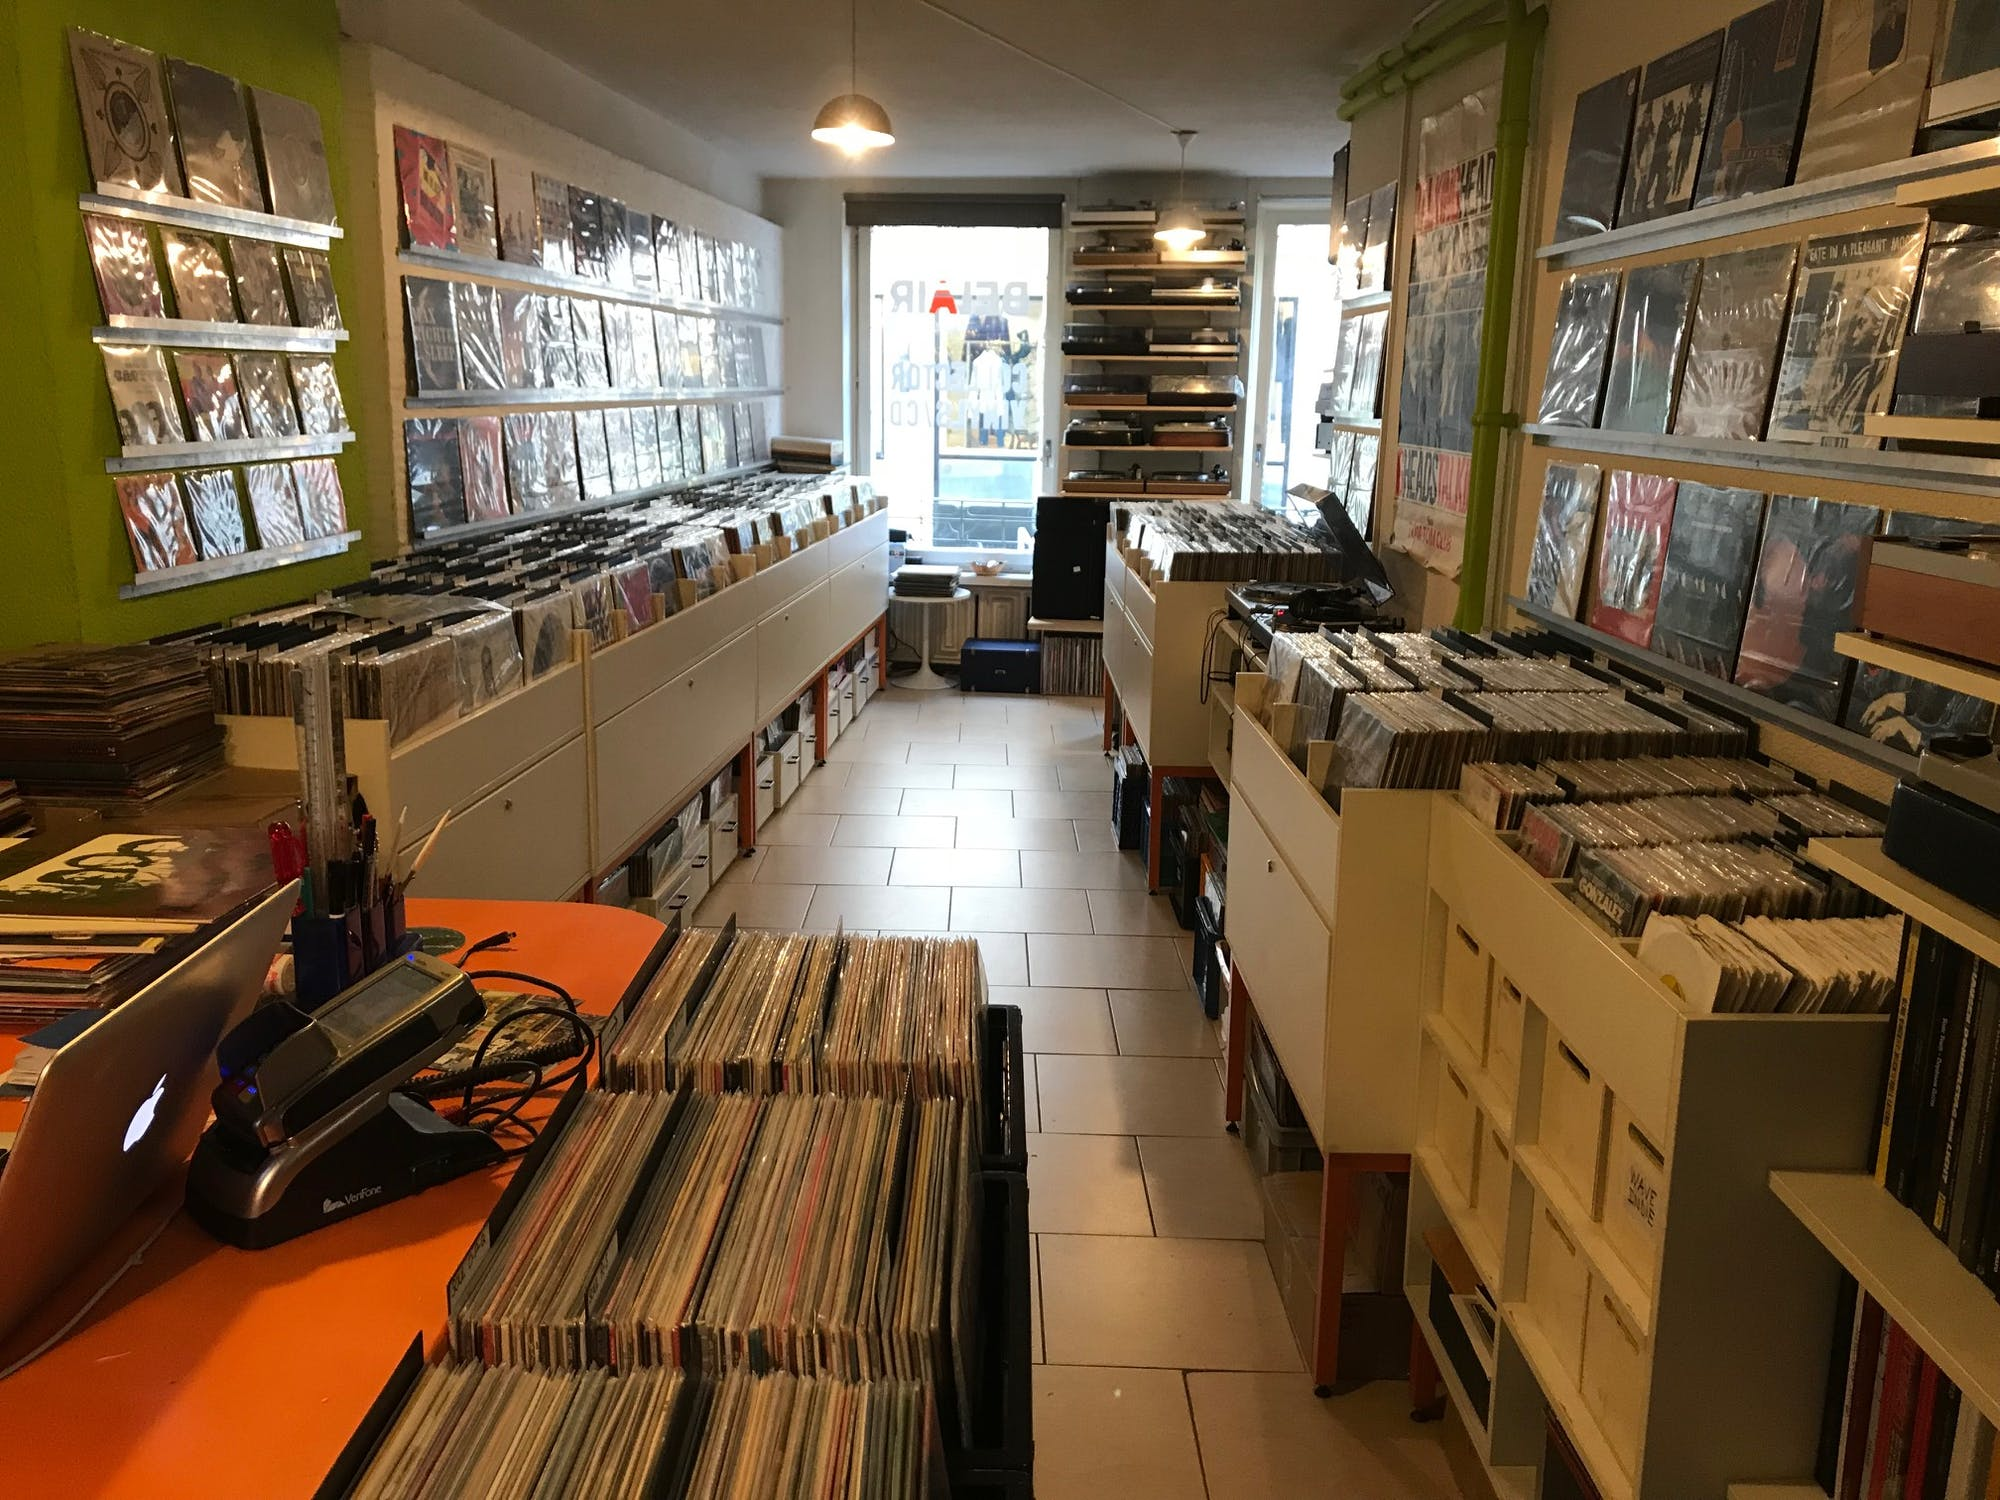 Belair records - Record Store Image